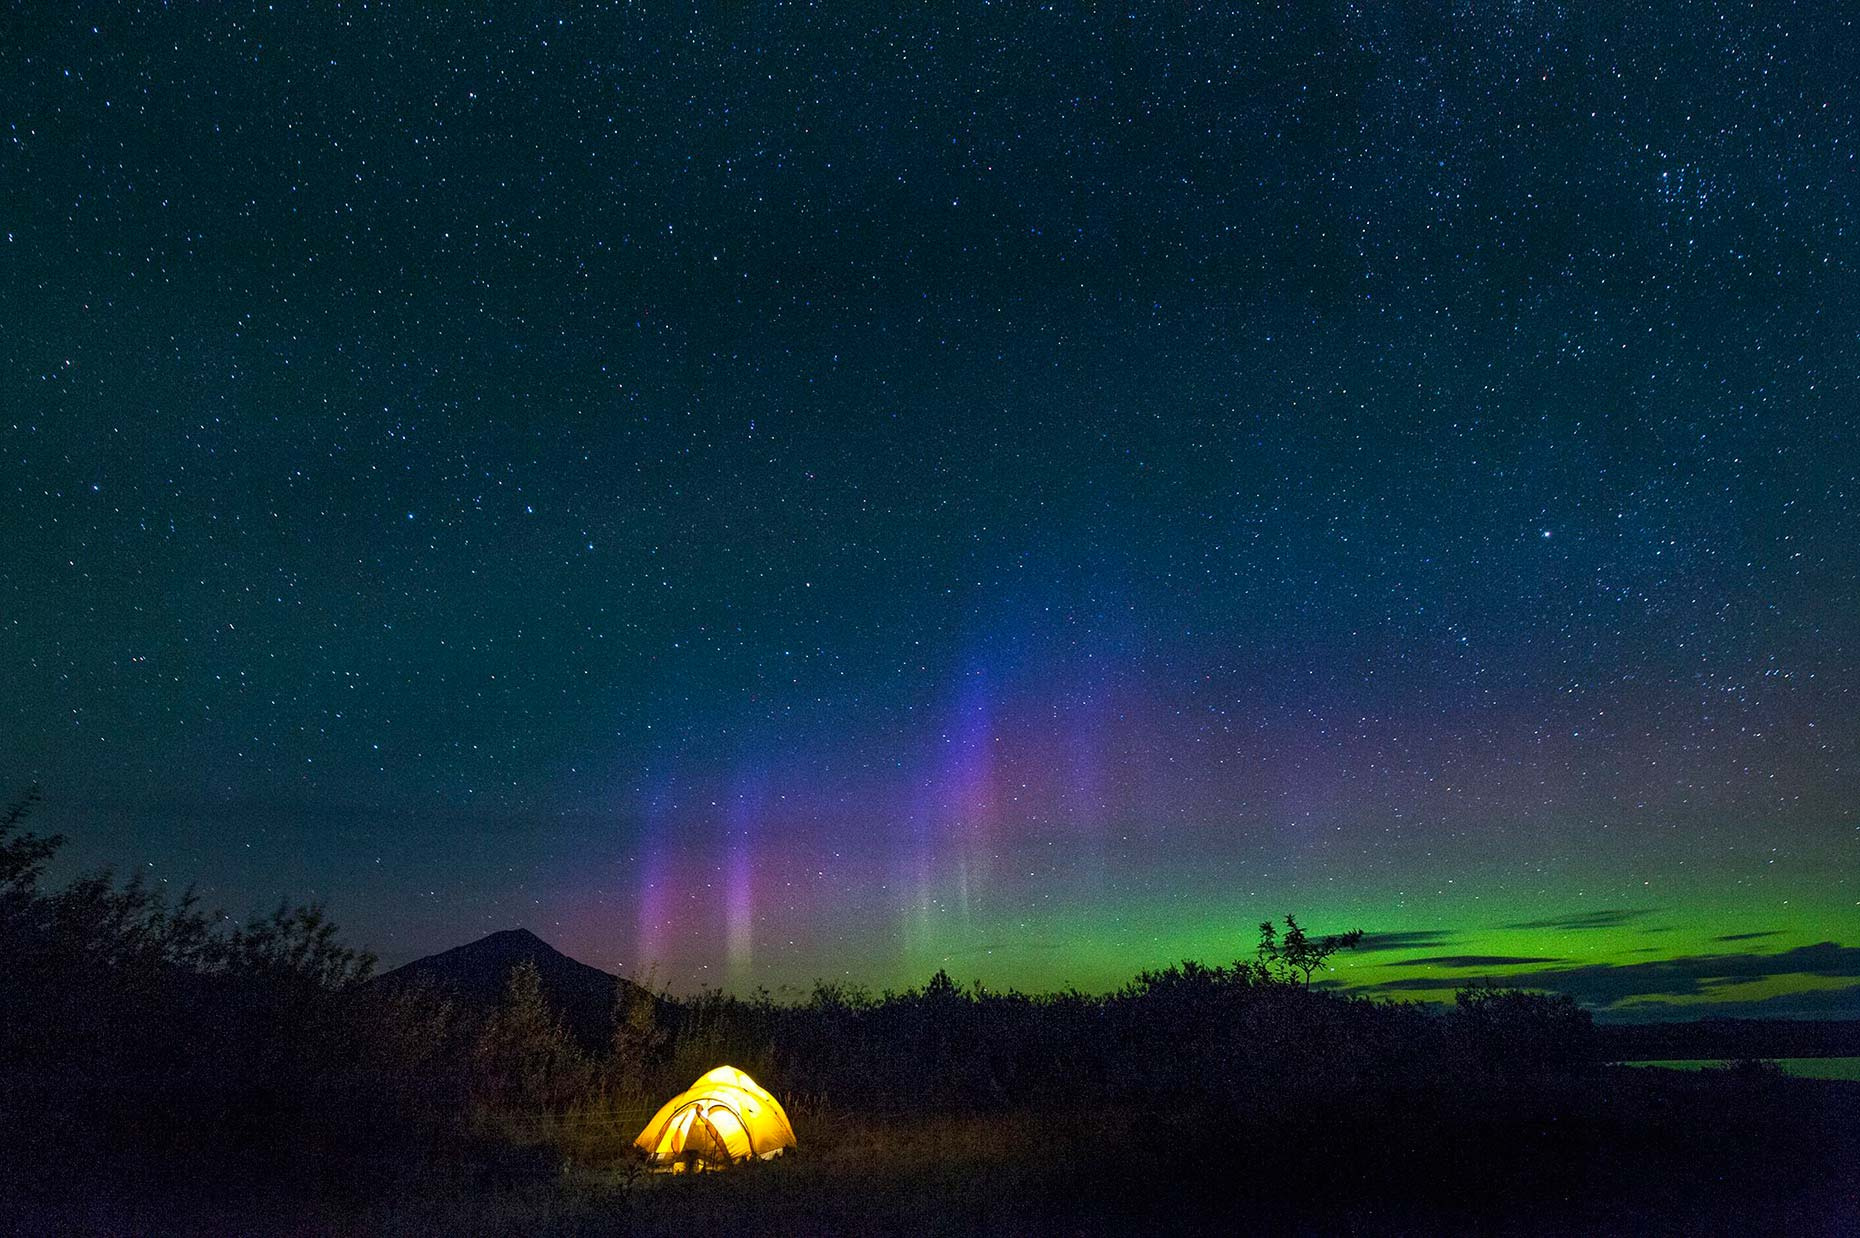 Ian-Coble-Camping-Tent-Night-Northern-Lights-Patagonia